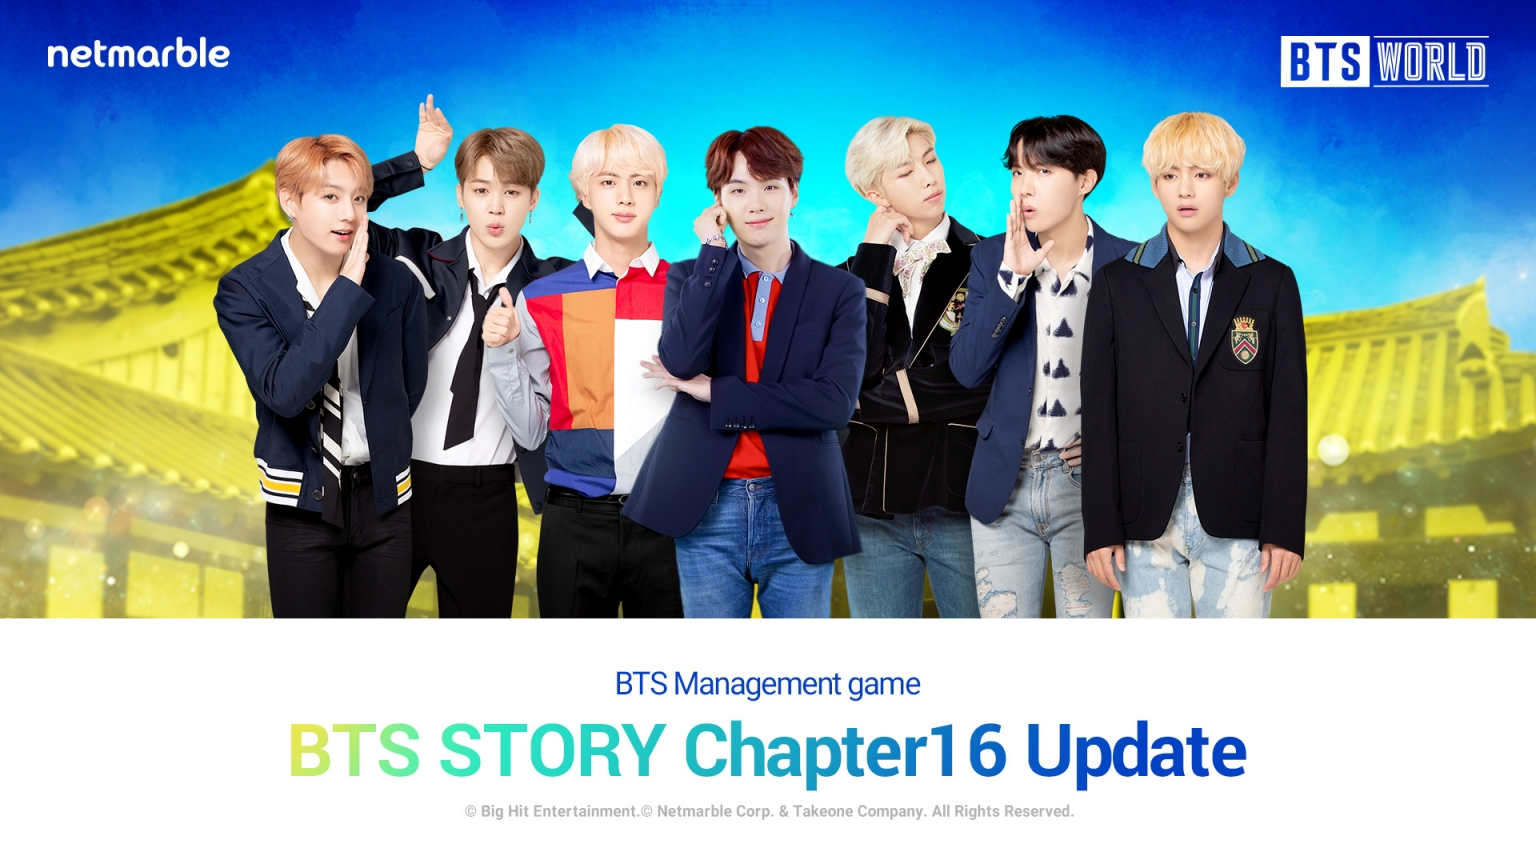 BTS TAKE <IDOL> WORLDWIDE IN THE LATEST CHAPTER ADDED TO BTS WORLD